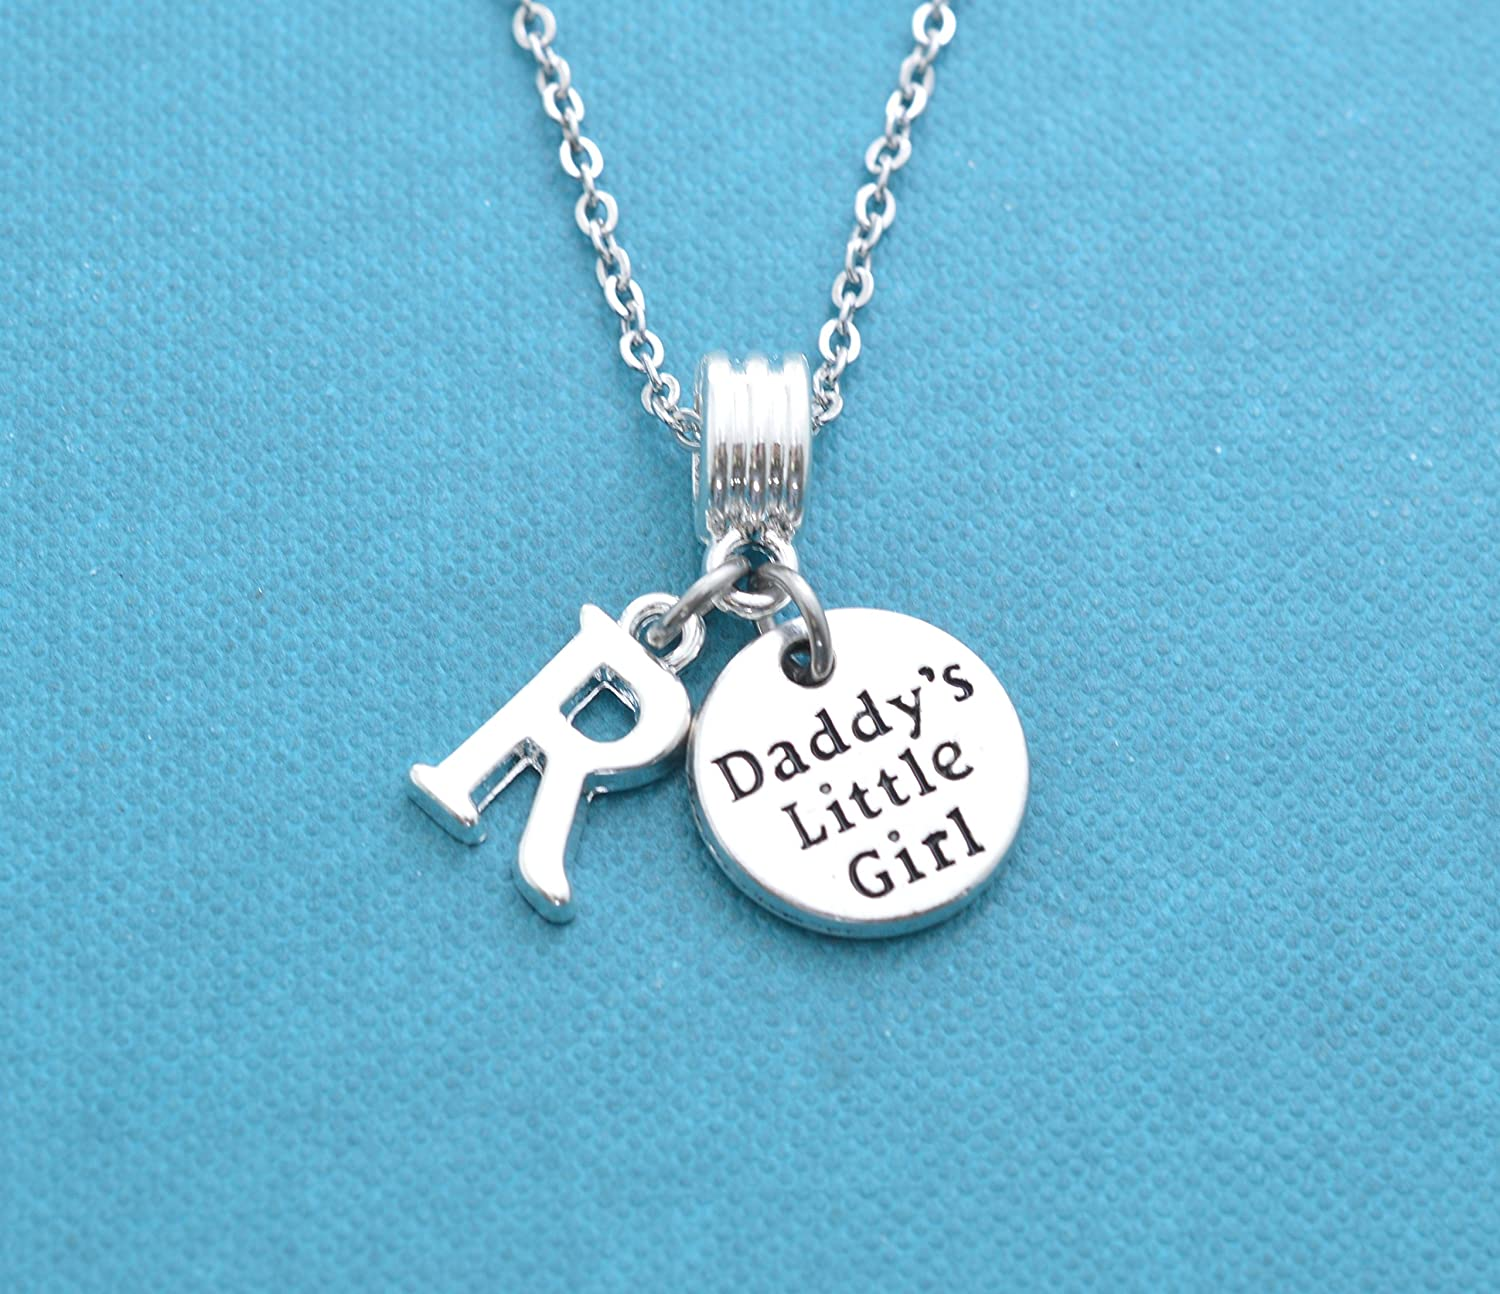 a1f014d2ee54d Little Girl's daddy's little girl necklace in silver personalized with  initial. Little girls jewelry. Little girl necklace. Daddy's girl